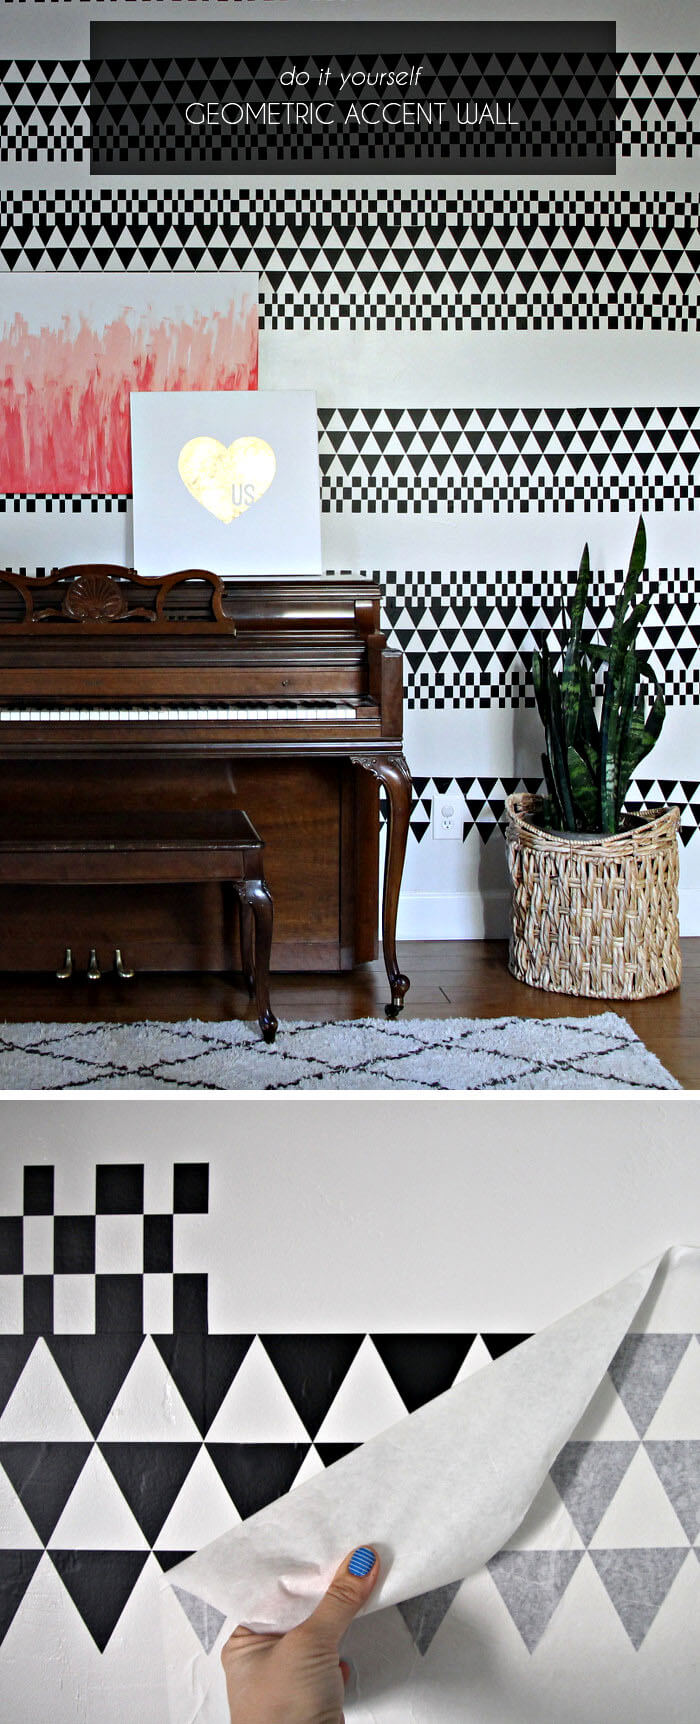 make a geometric accent wall using vinyl - perfect for renters!